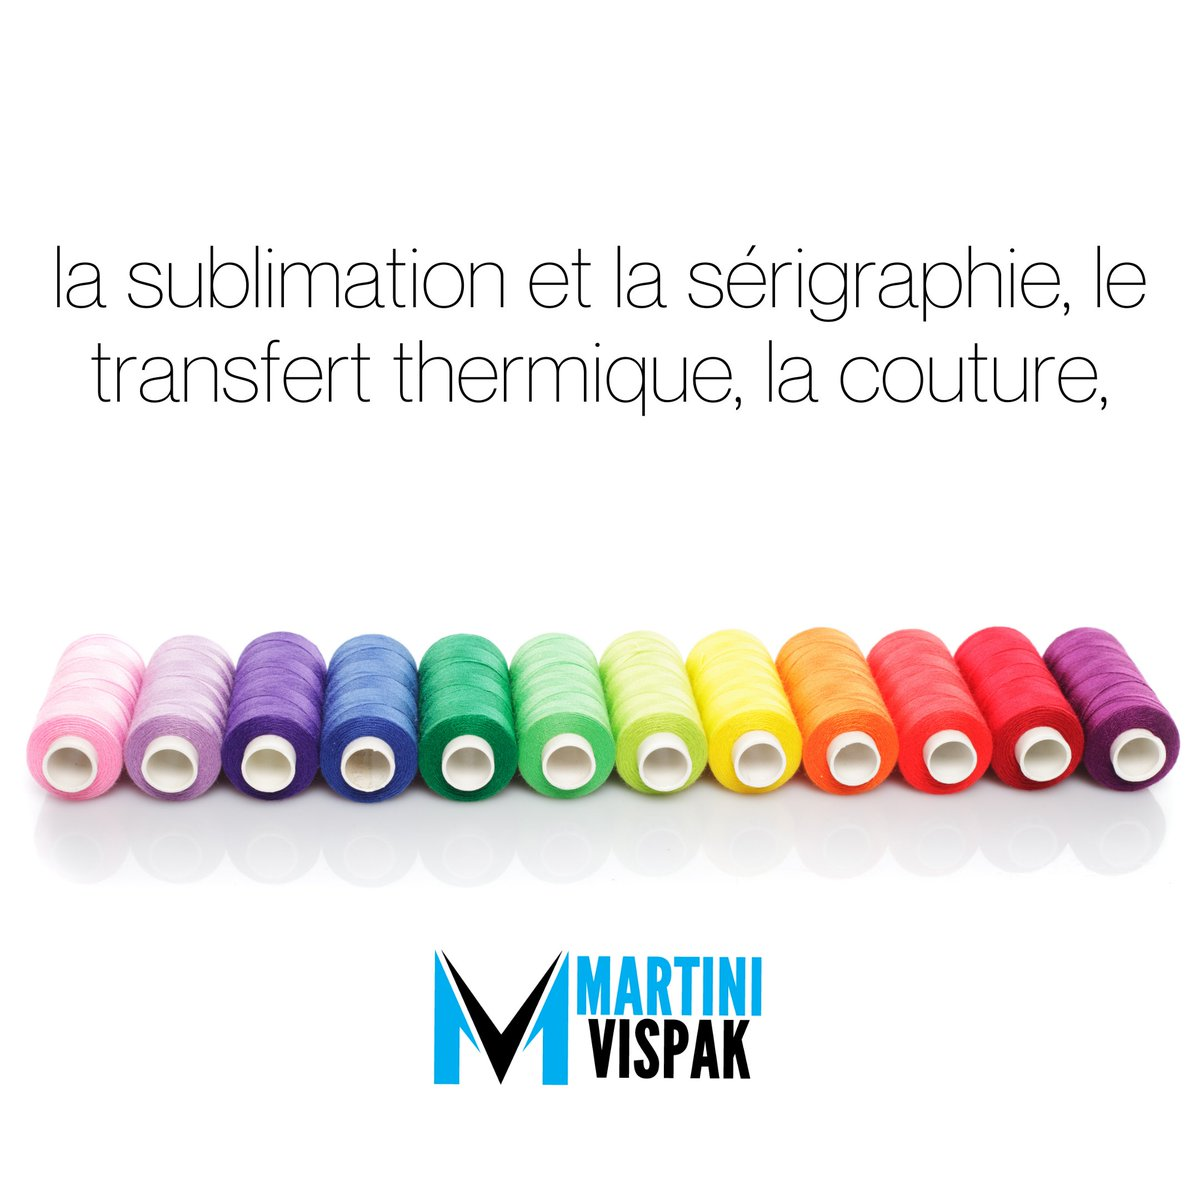 #produitspromotionnels #FabriquéàMontréal  #impression  #personnalisation. #Conceptiongraphique #sérigraphie #transfertthermique #couture #marketing #serviceàlaclientèle. Tout est fait localement à #Montréal #Canada https://t.co/TYtACC9WlL #MartiniVispakQC  #FabriquéauCanada https://t.co/THey6MXOpj